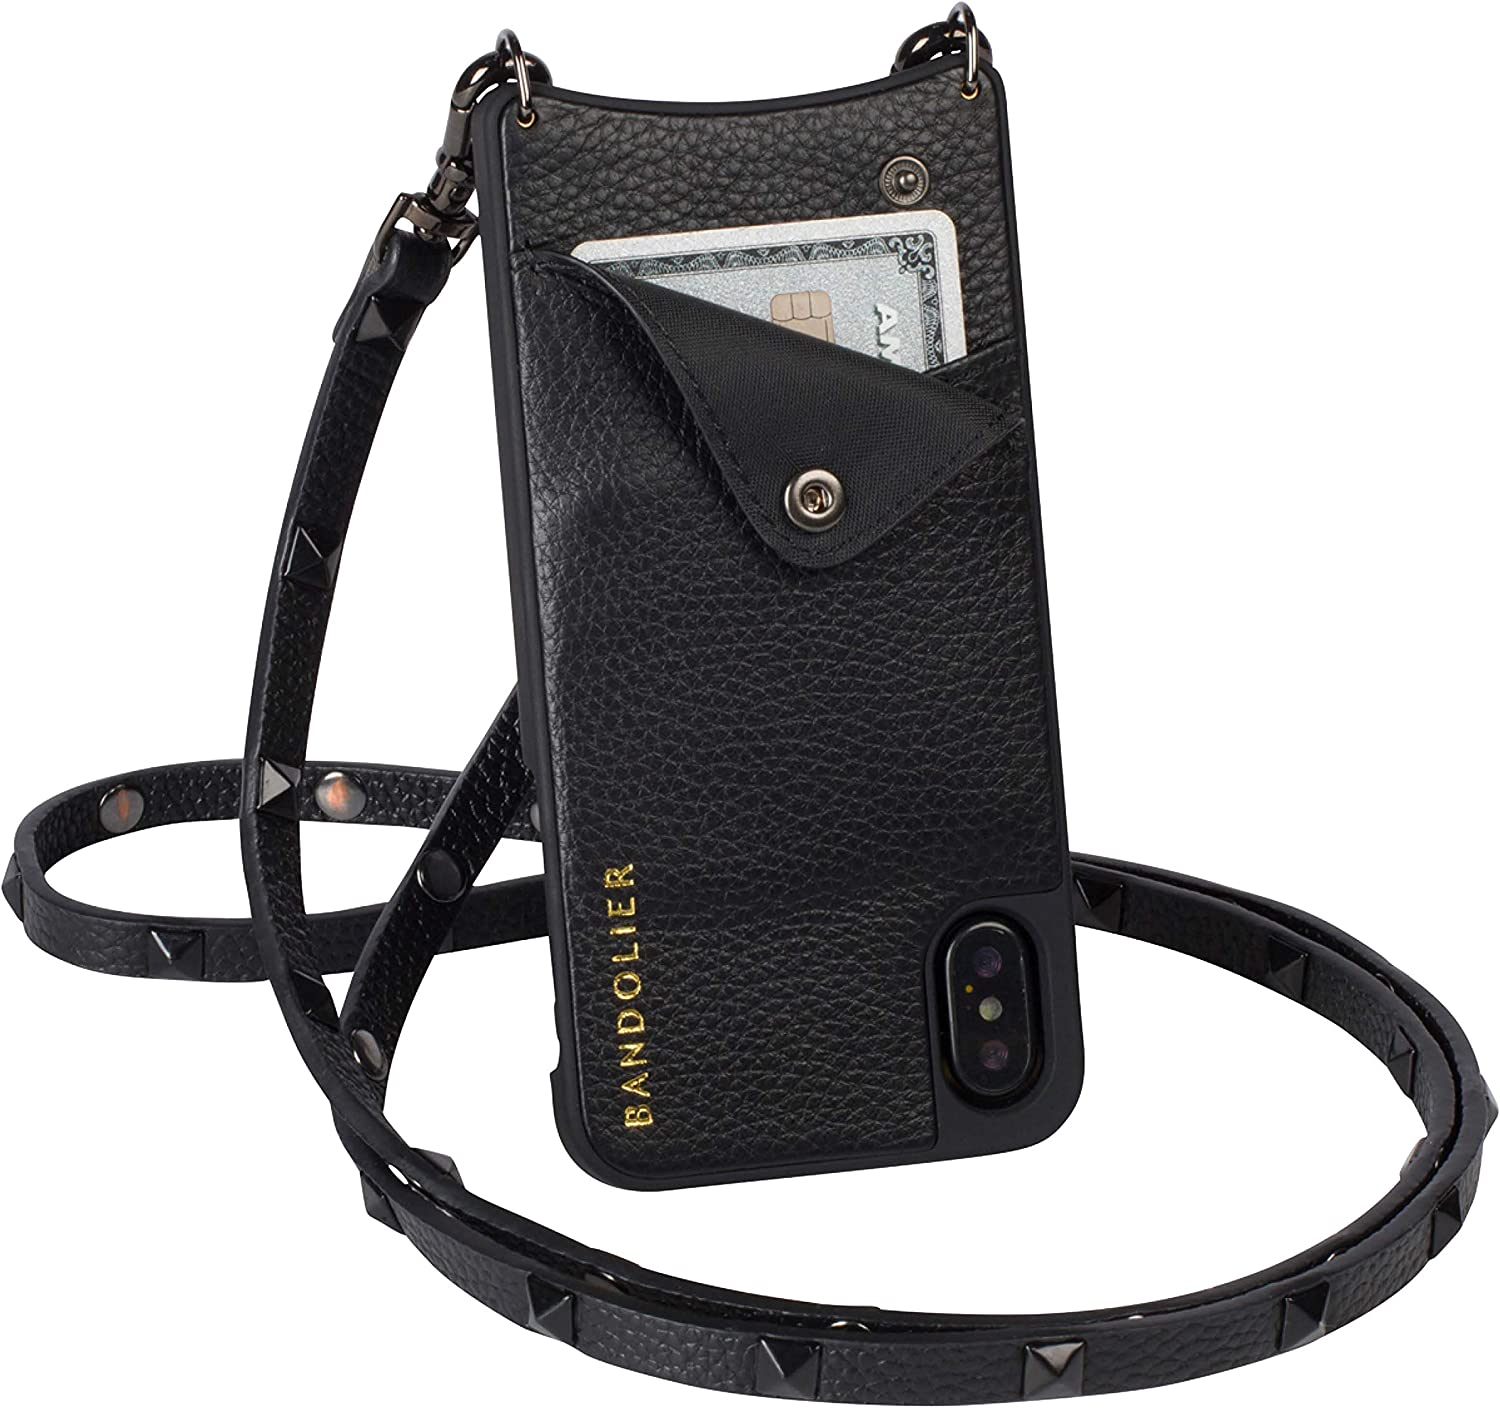 Bandolier Sarah Crossbody Phone Case and Wallet - Black Leather with Pewter Detail - Compatible with iPhone 8 Plus, 7 Plus, 6 Plus, 6s Plus Only